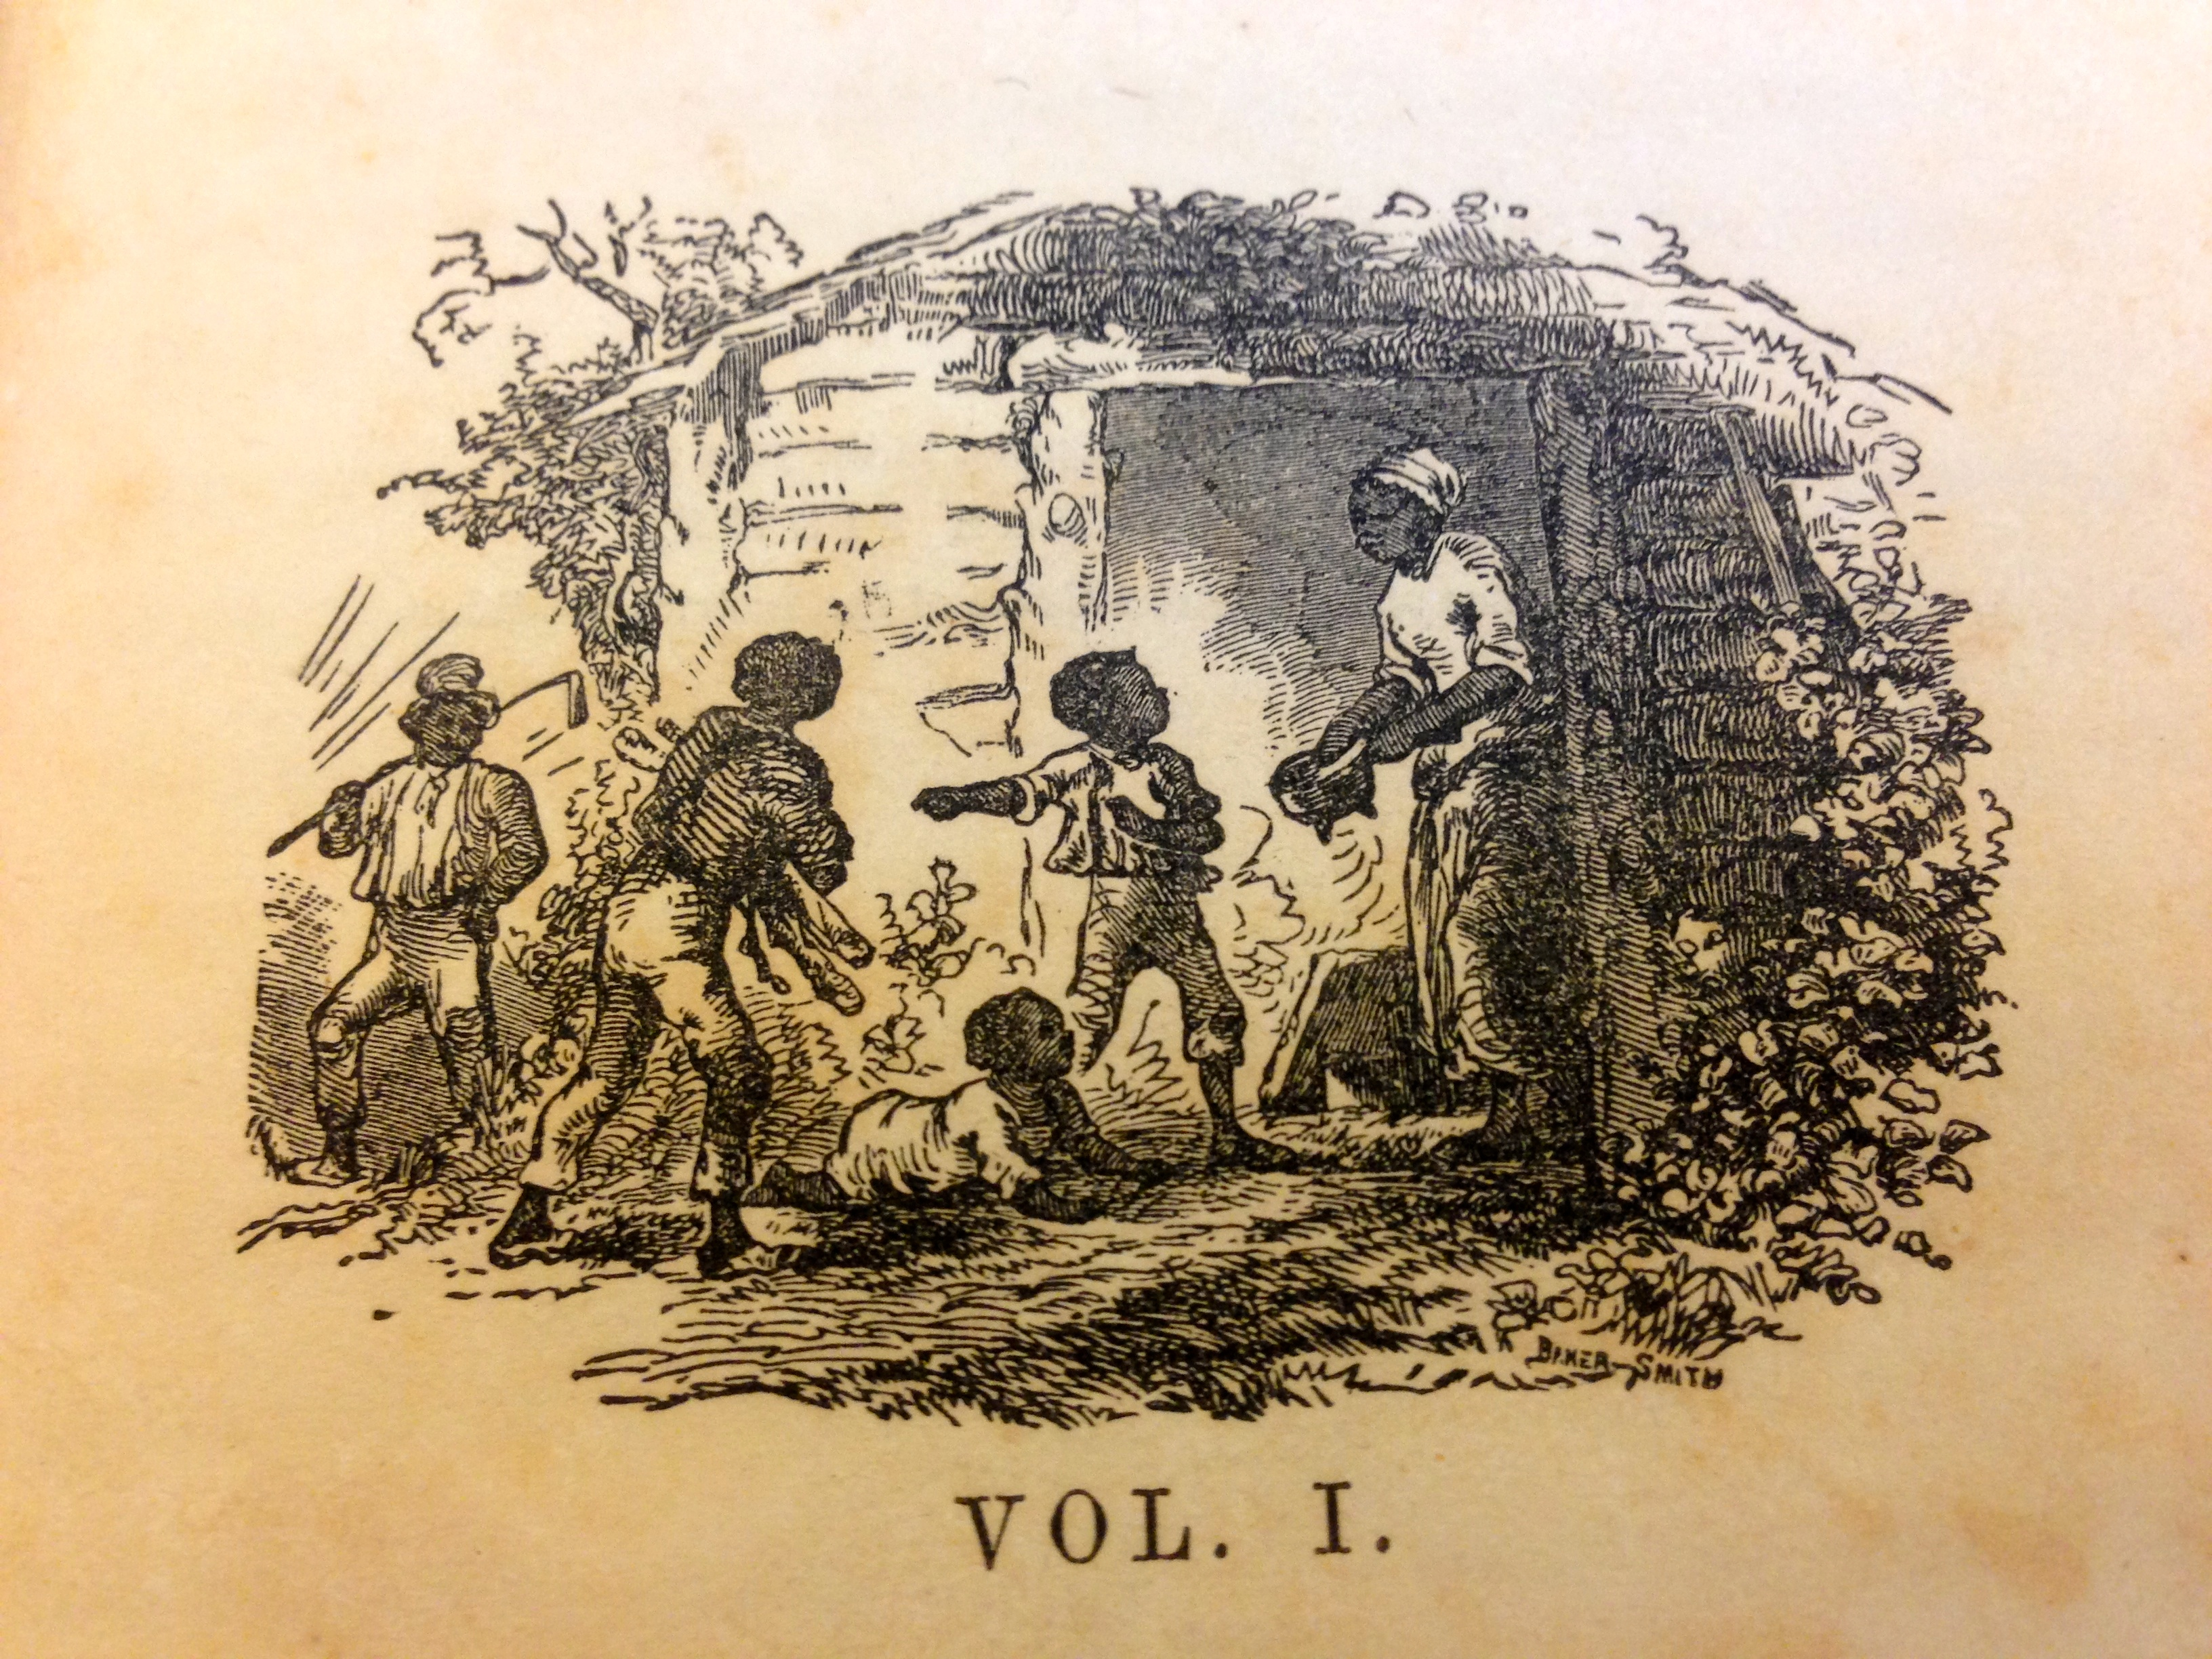 Title page image from volume 1 of Uncle Tom's Cabin.